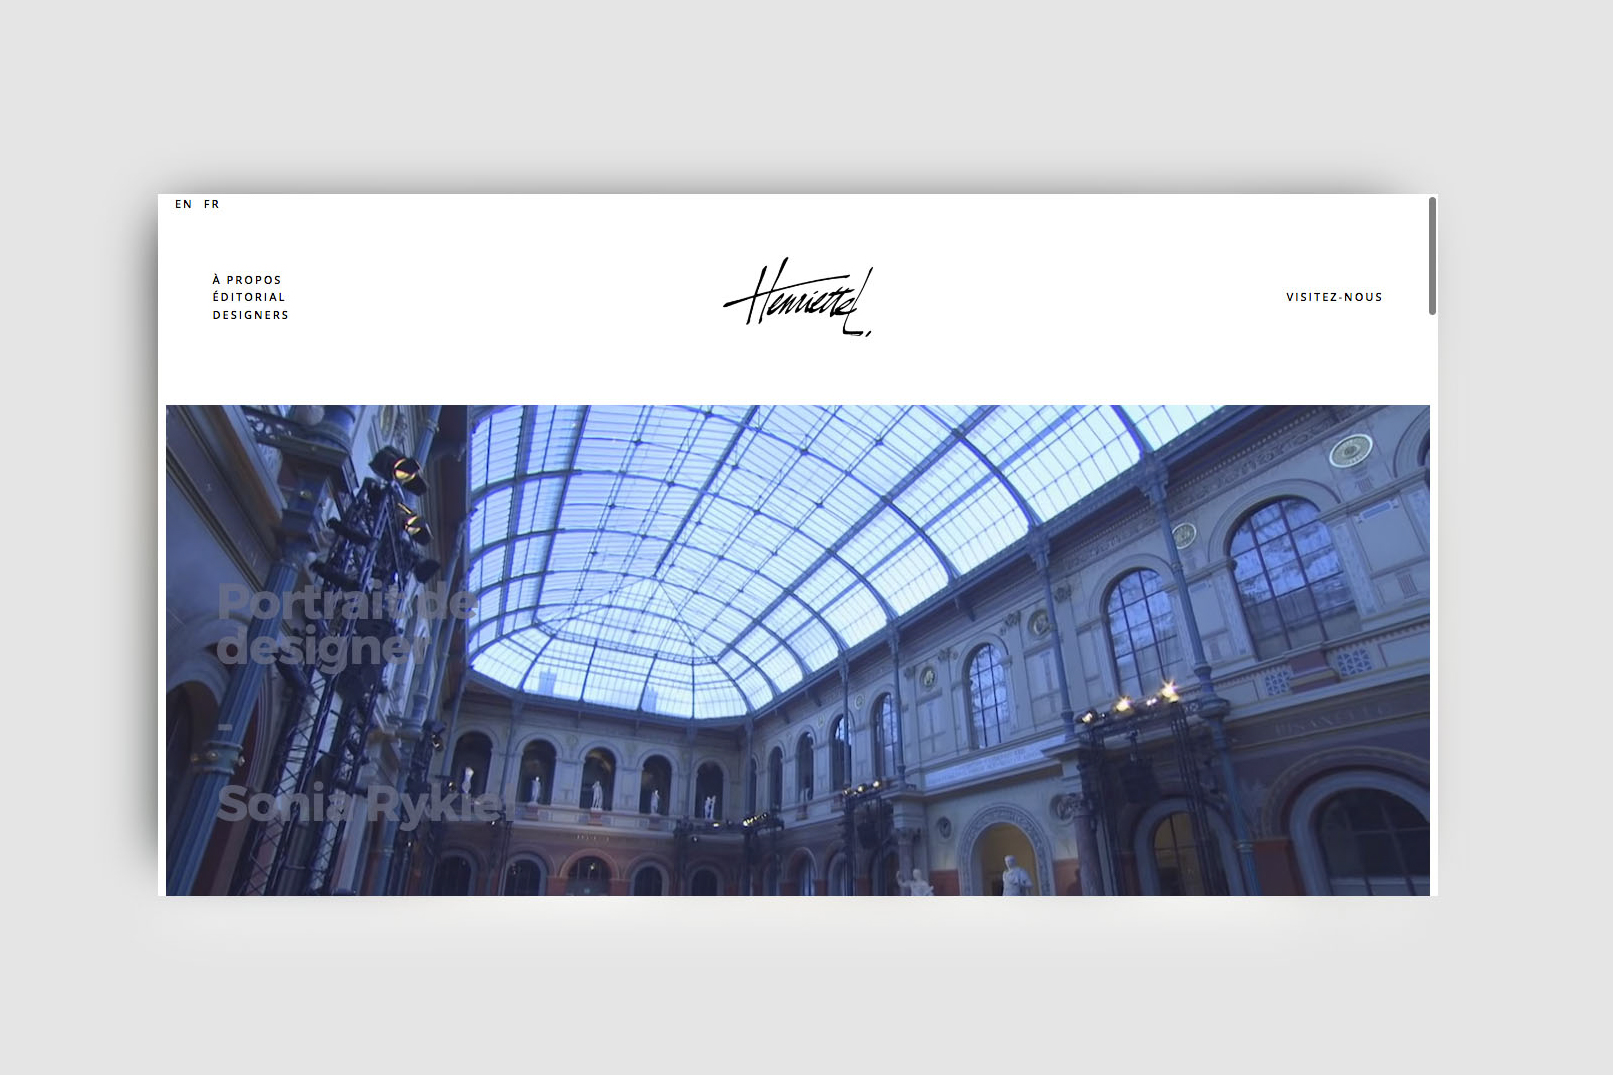 Henriette L. Website and Graphic Design by threefold